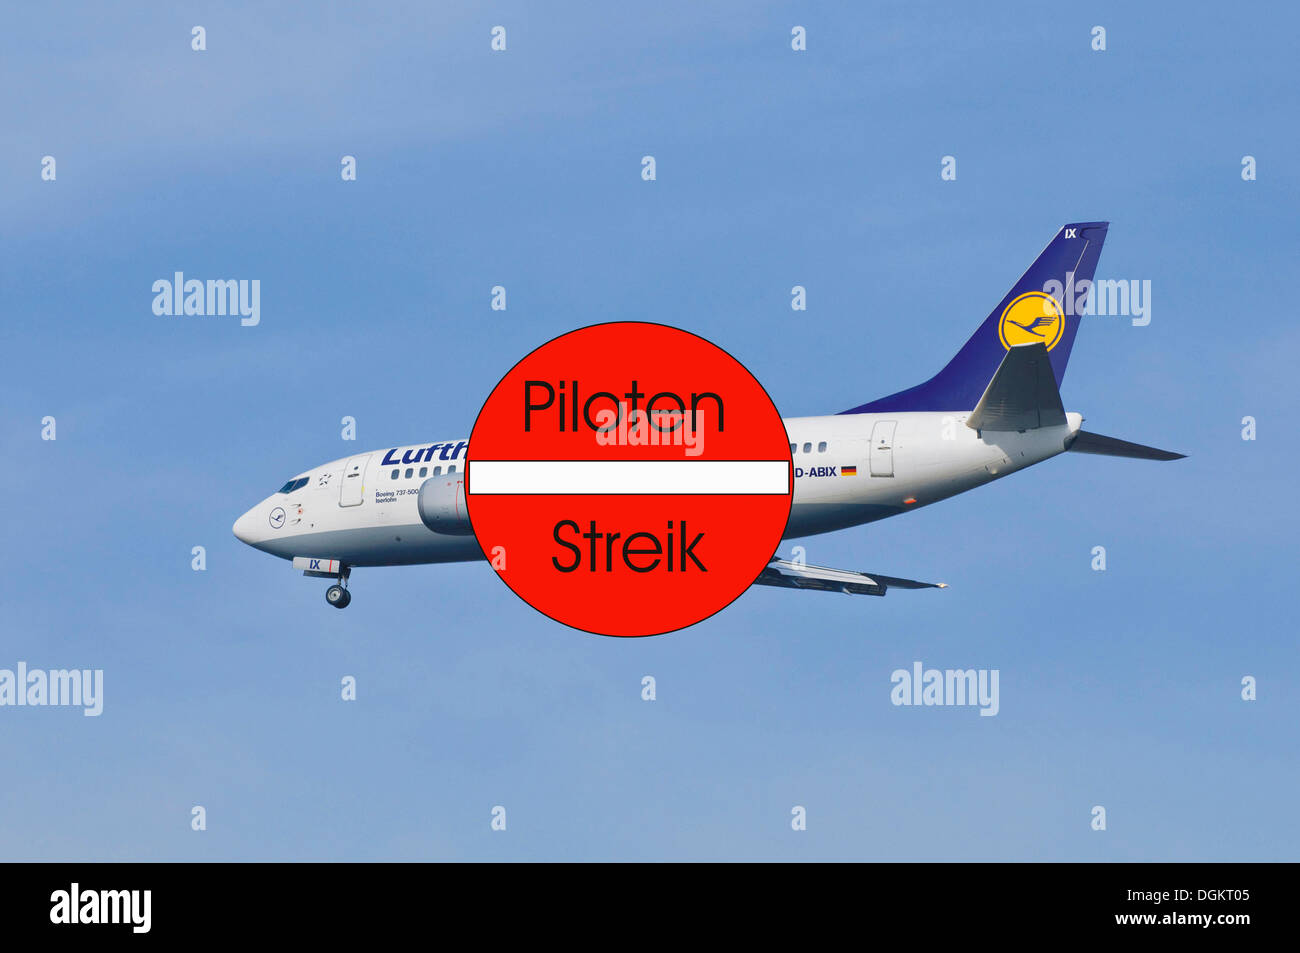 Pilots strike at Lufthansa airlines, industrial action, symbolic image - Stock Image